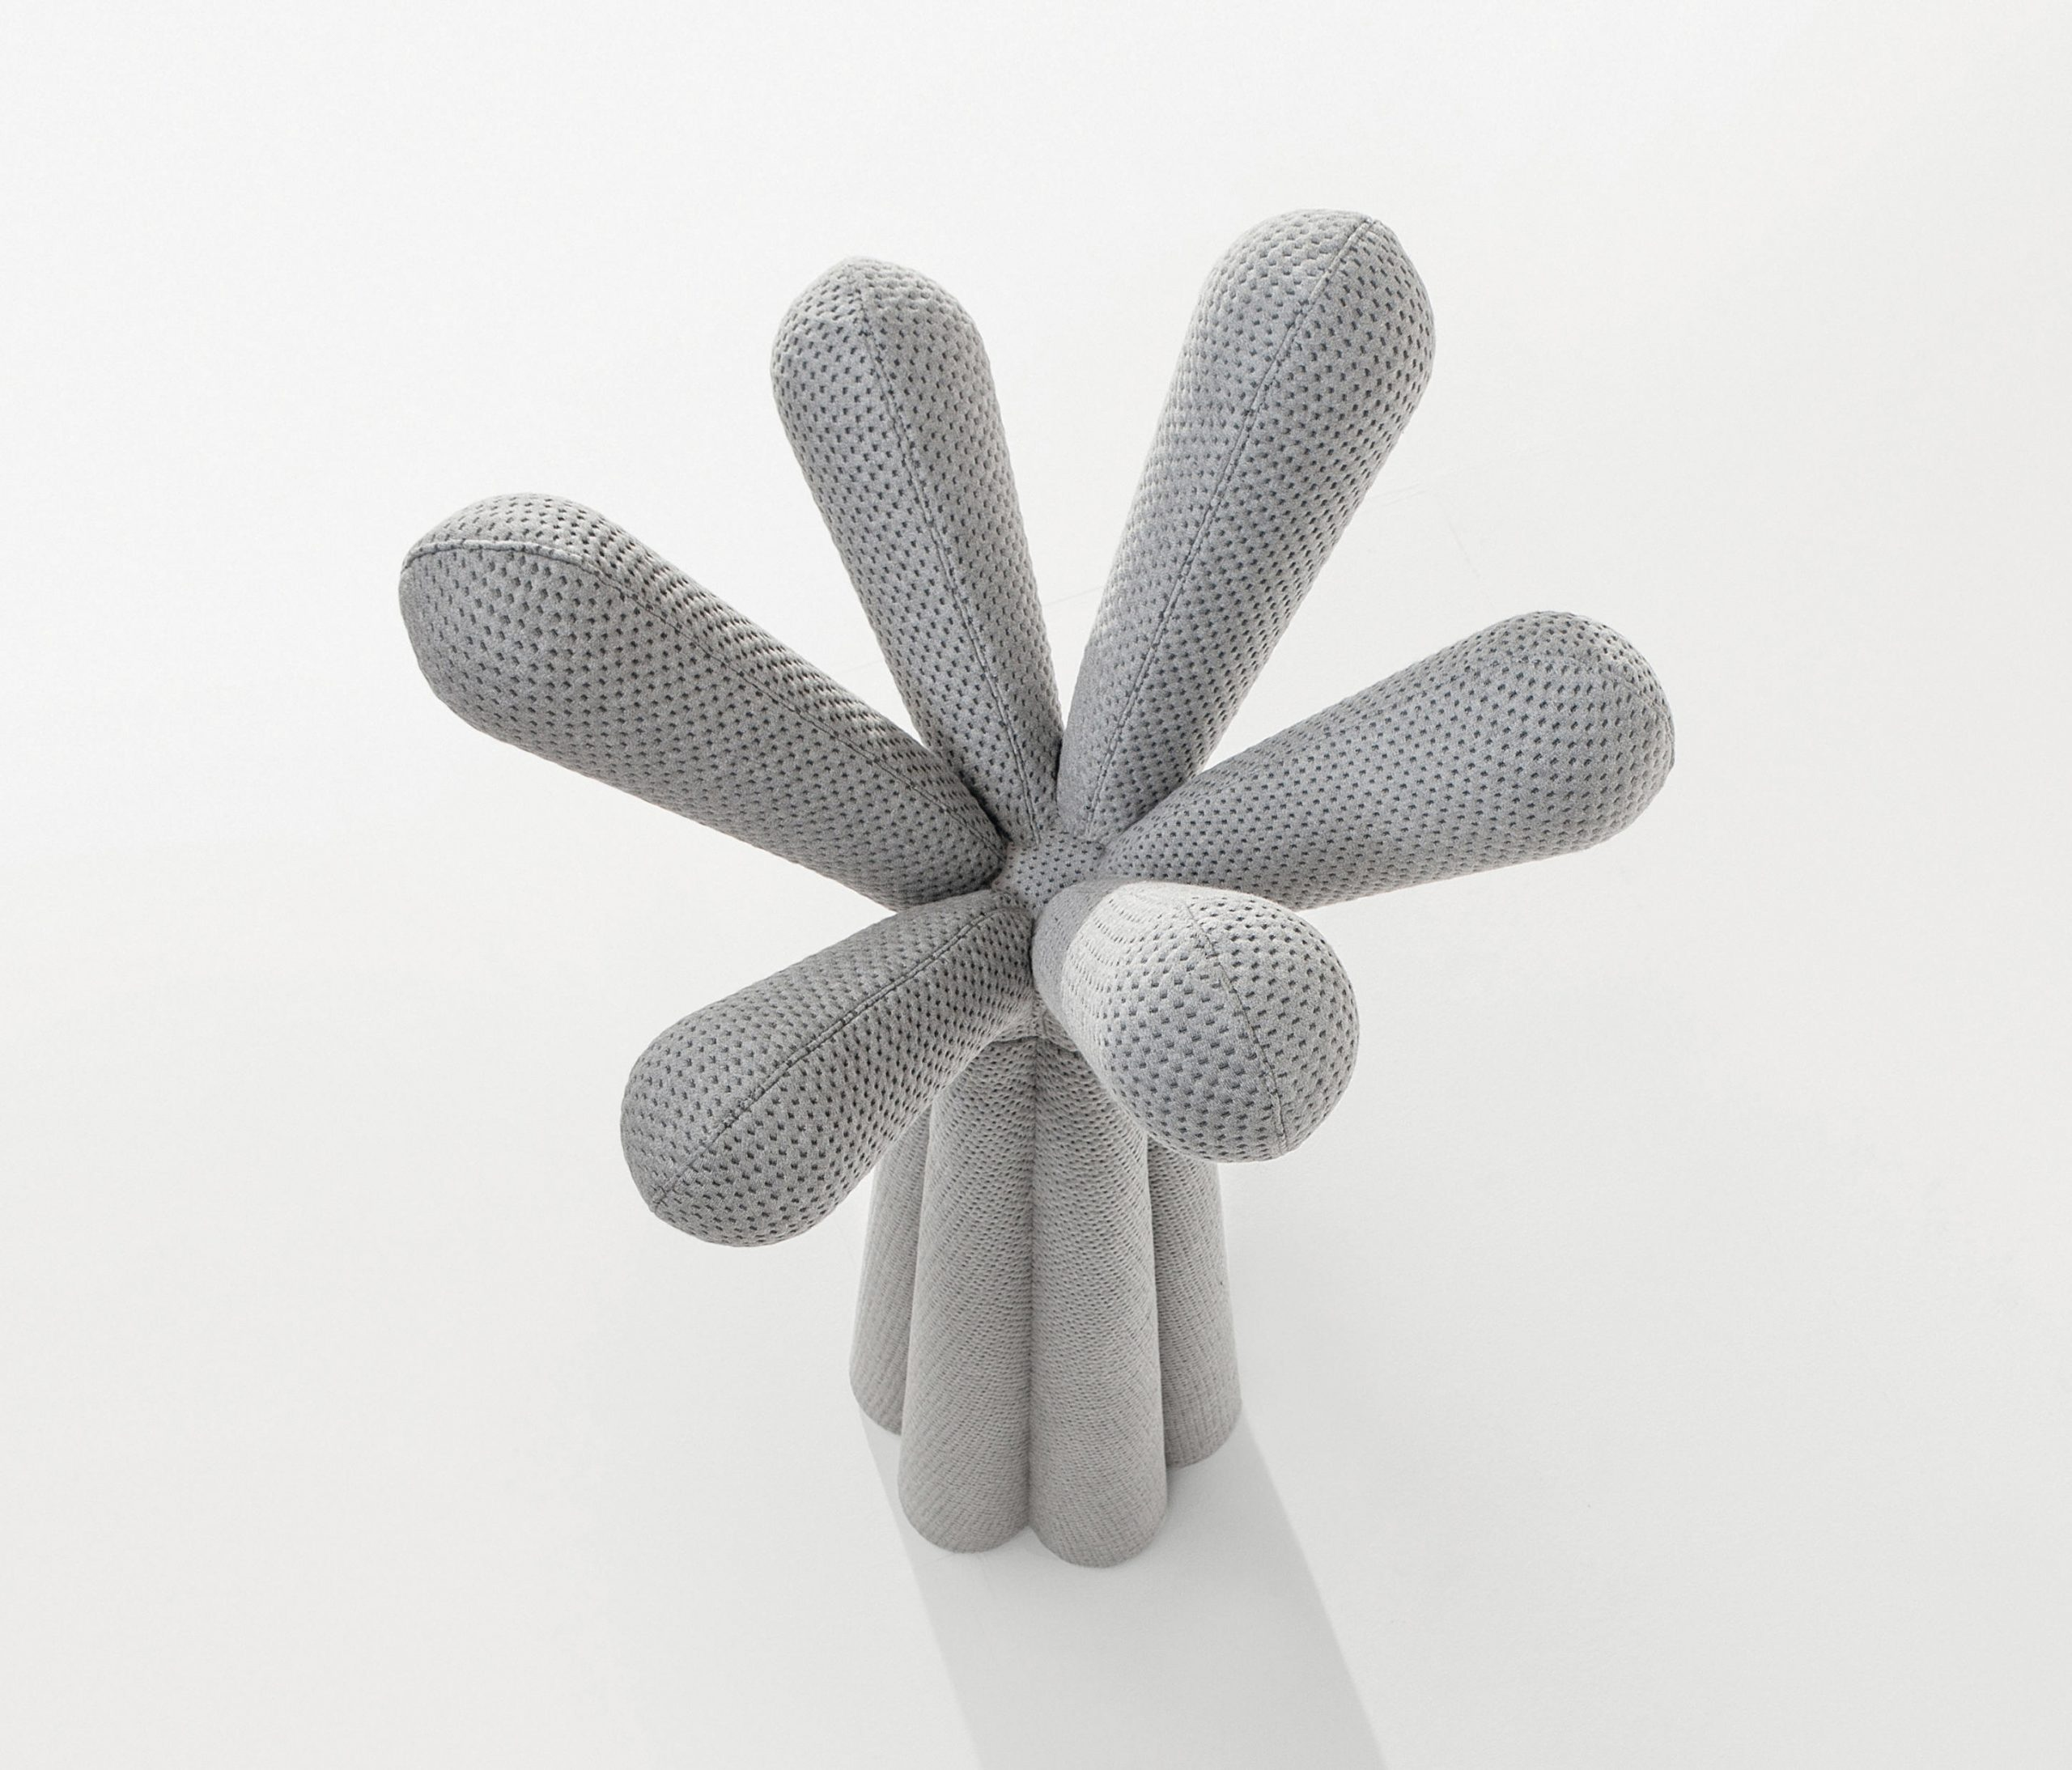 Anemone Coat Rack by Fabrice Berrux for Bonaldo